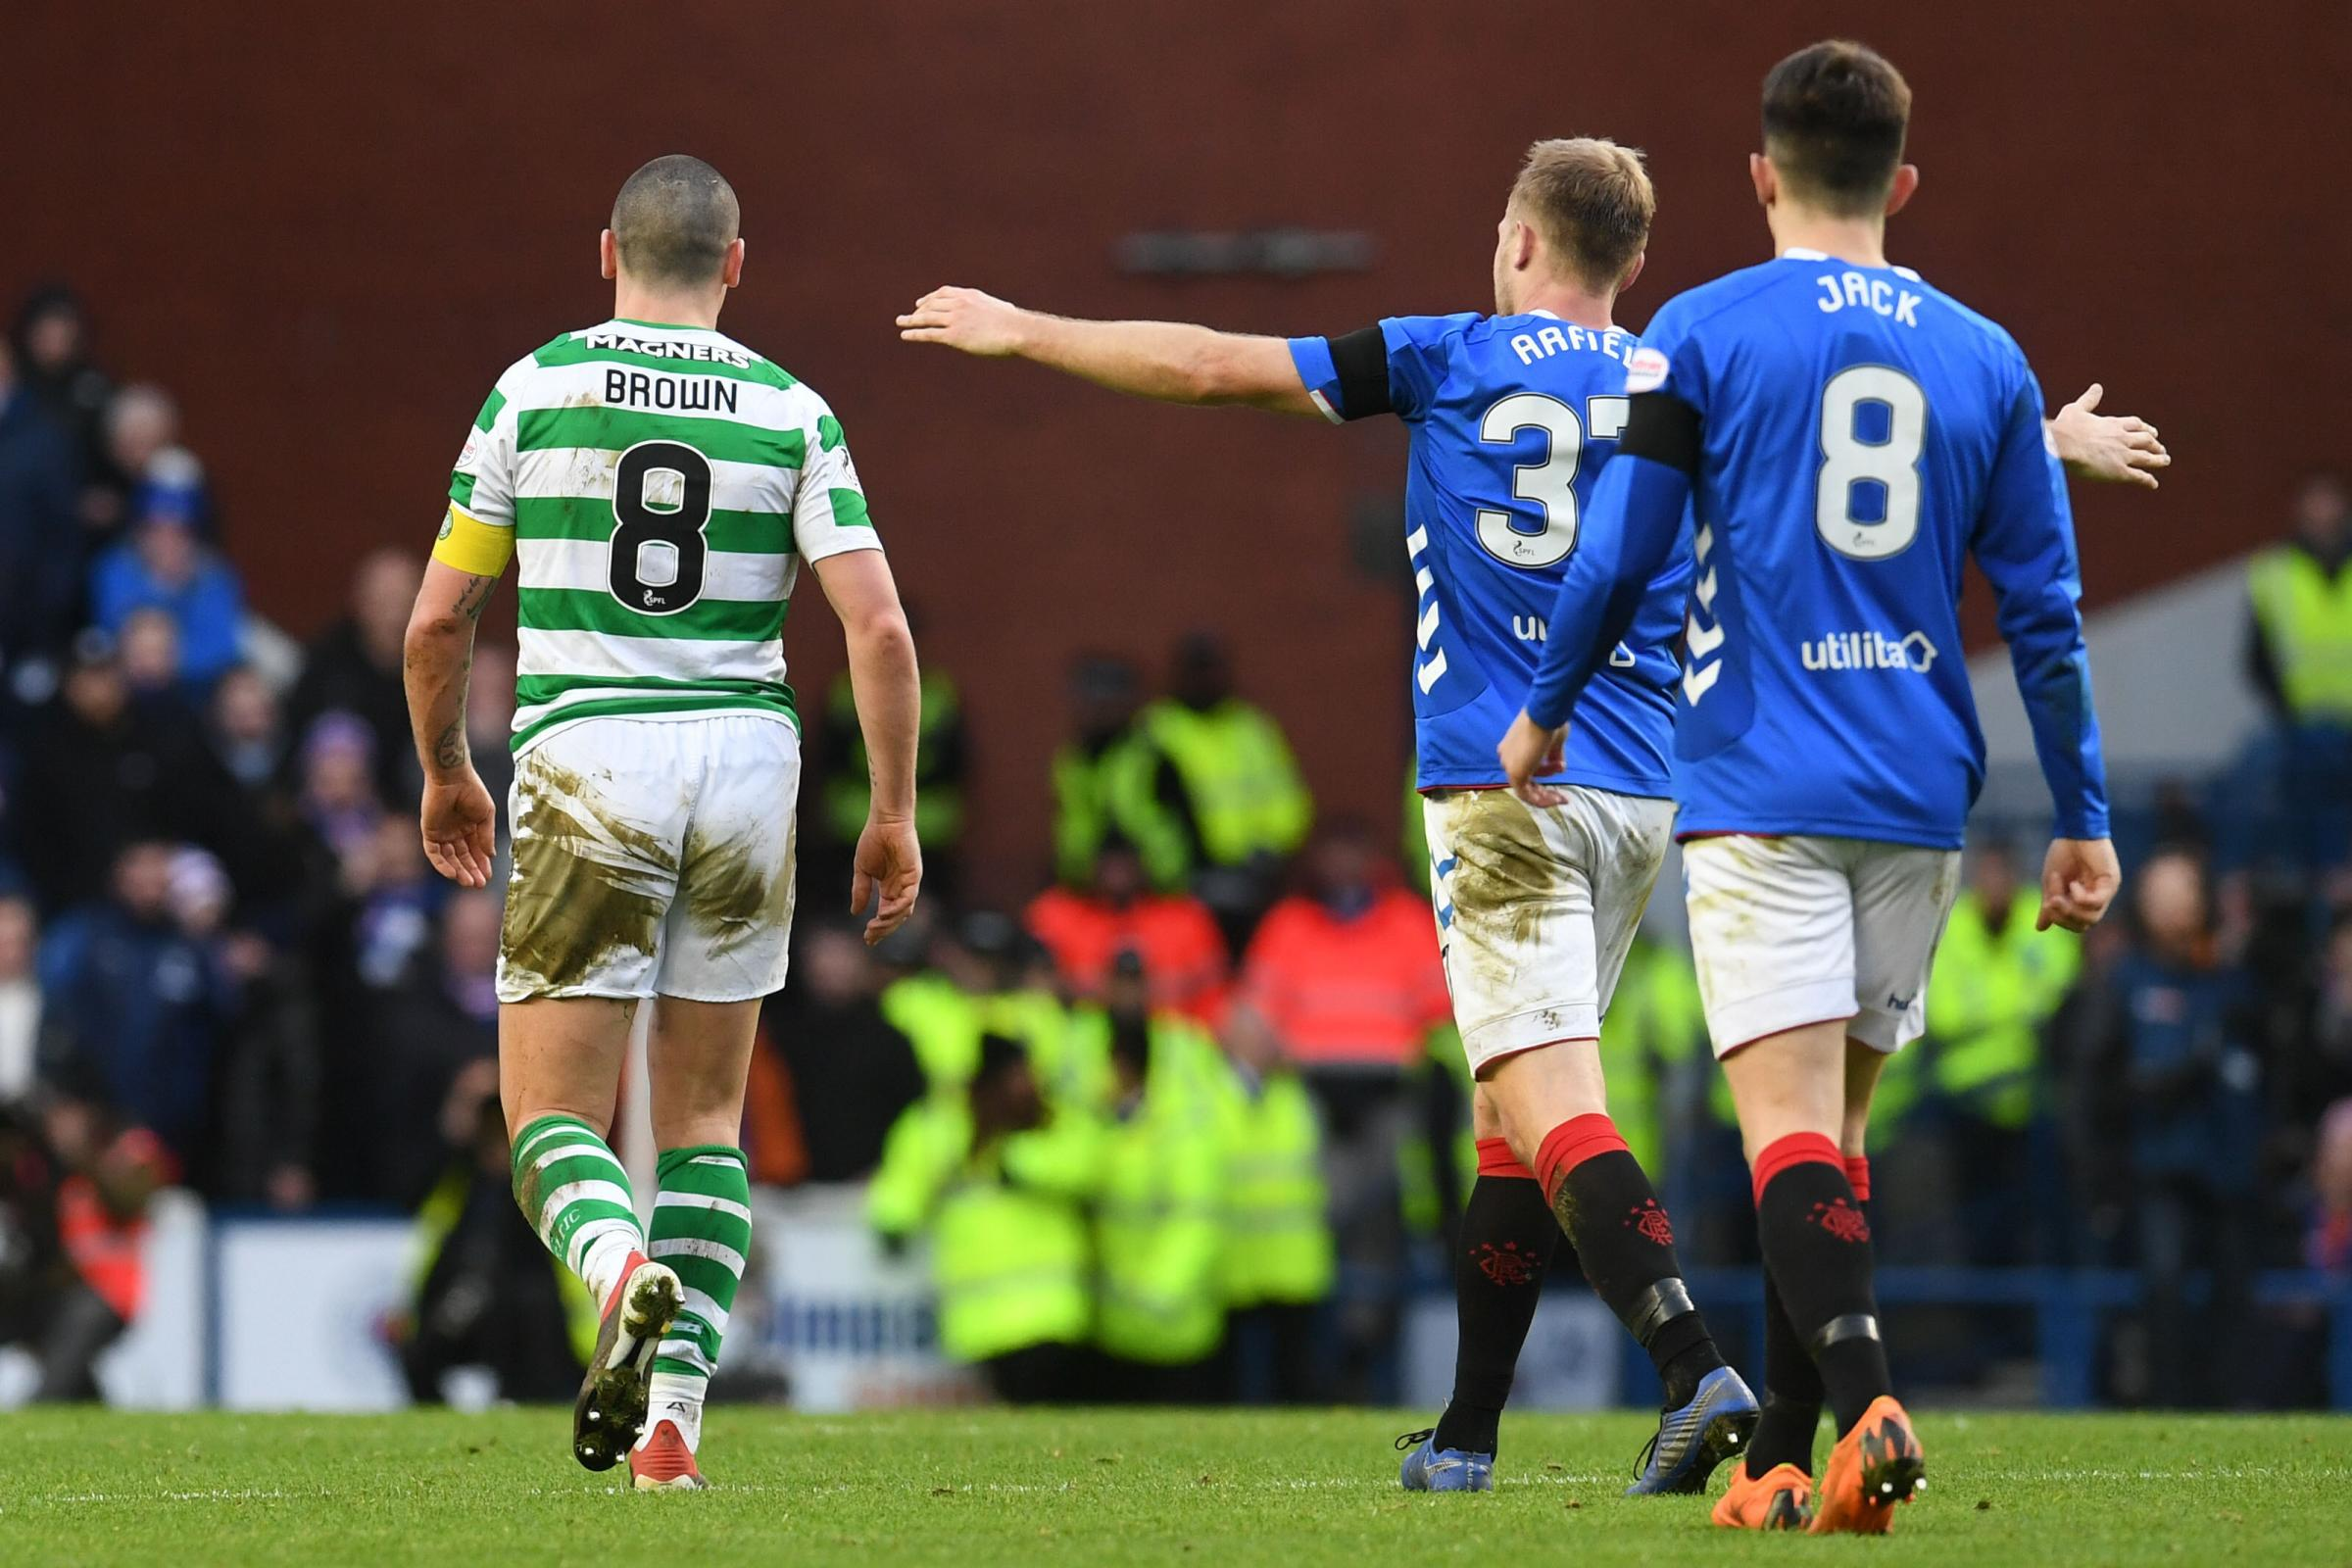 Scott Arfield on his 'Broony' celebration, his mentality and why he hasn't watched Rangers' Old Firm win back yet